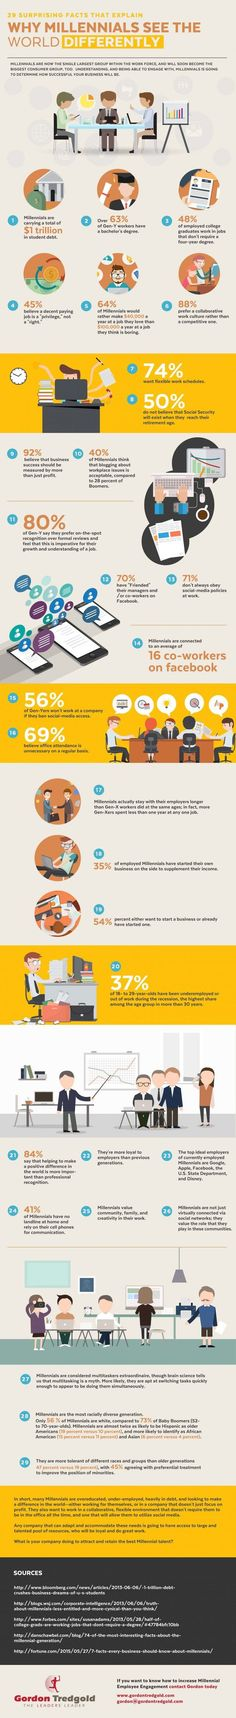 Why Millennials See The World Differently #Infographic #Millennials